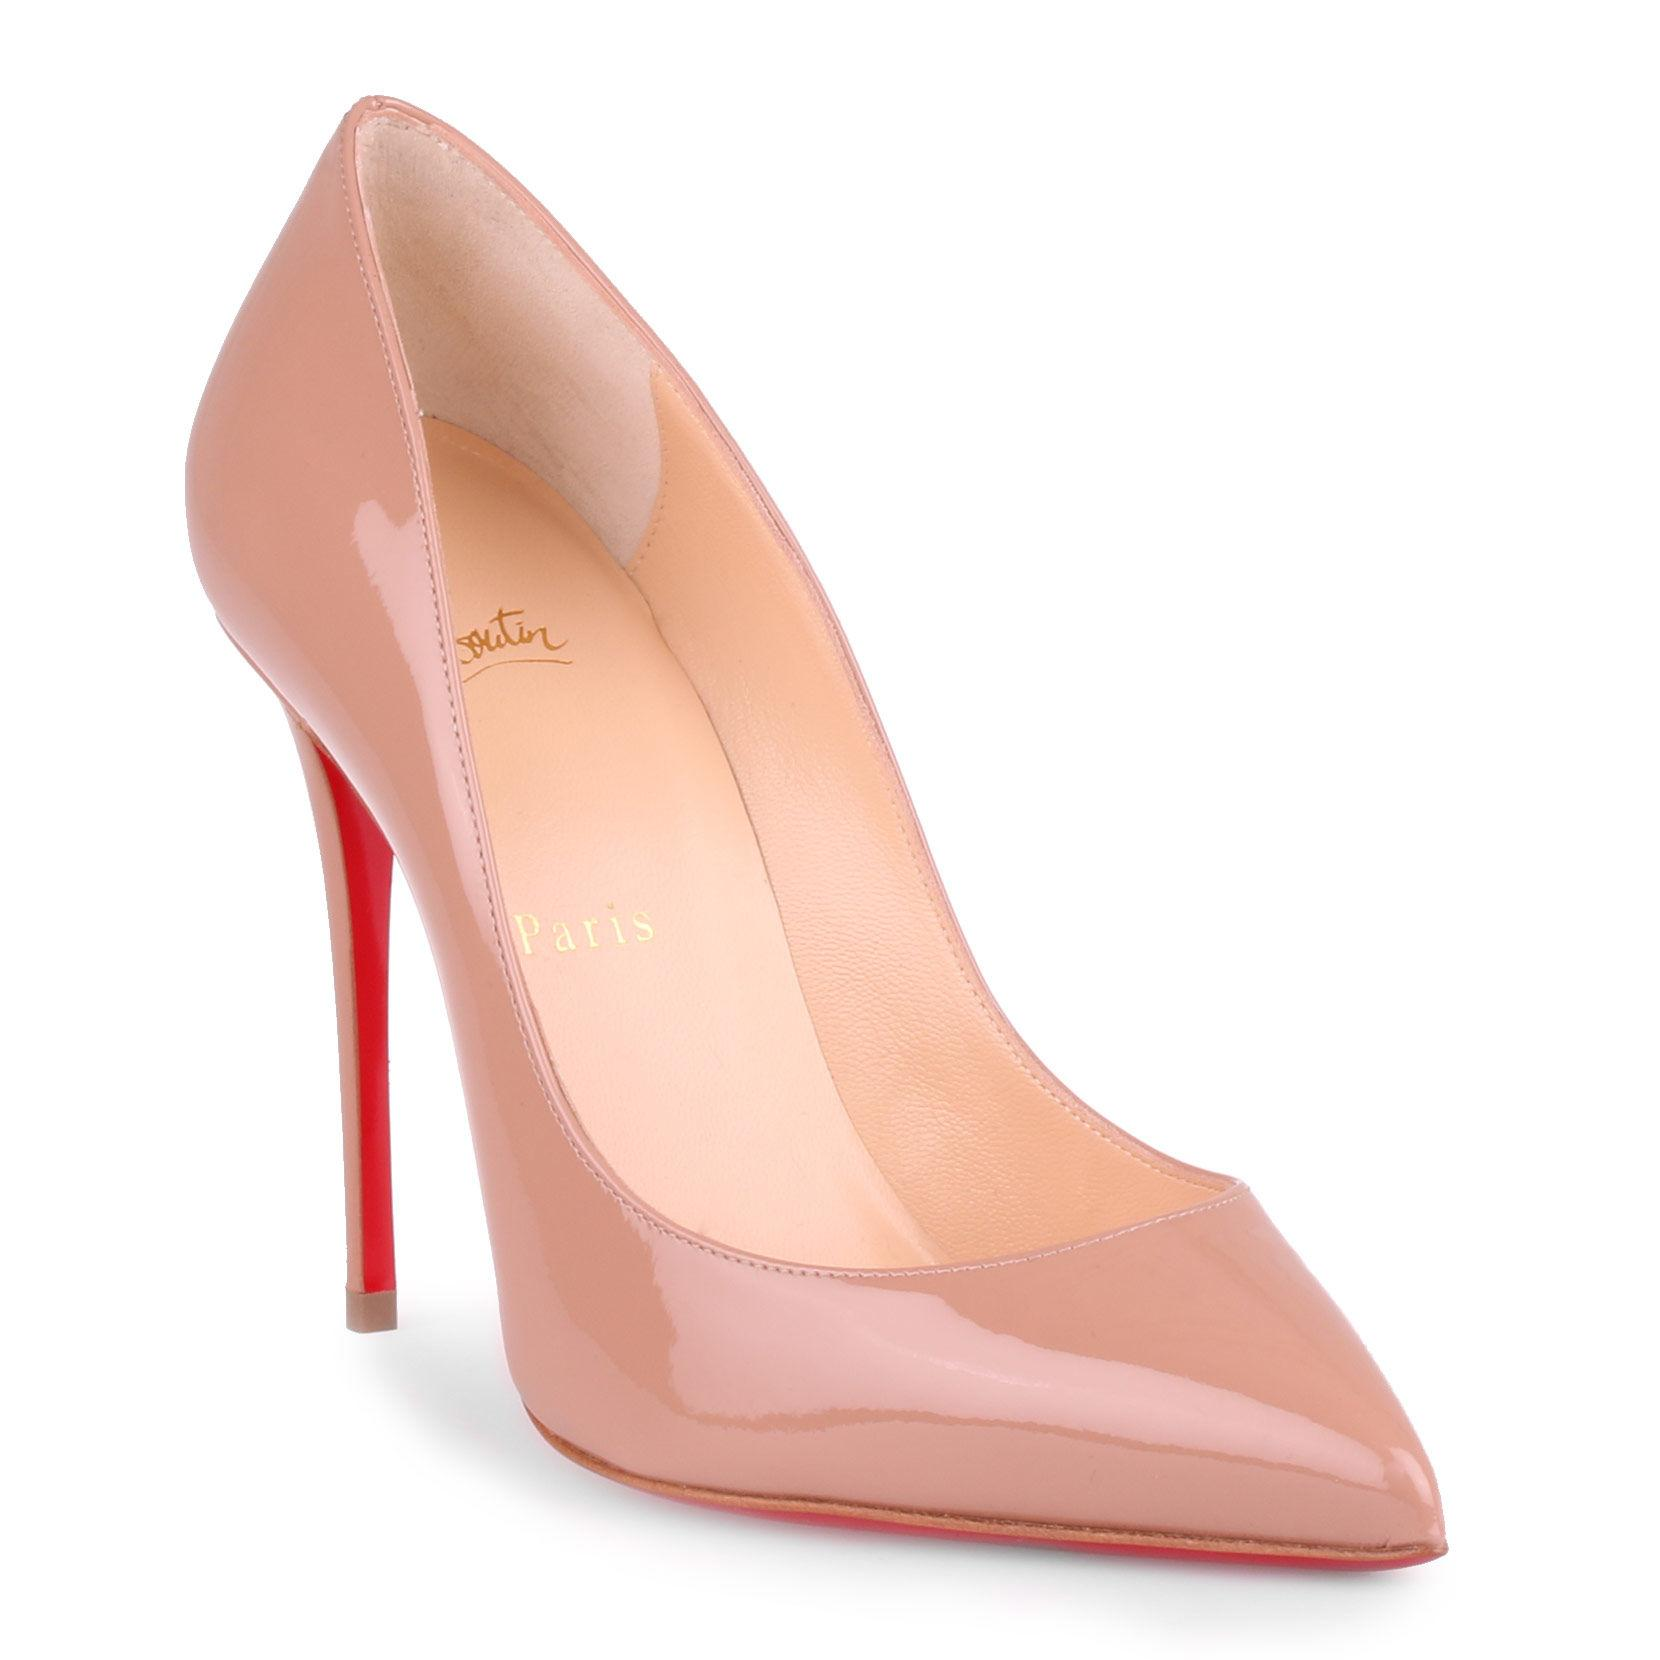 324aaf3b468 Christian Louboutin. Women s Pigalle Follies 100 Beige Patent Leather Pumps